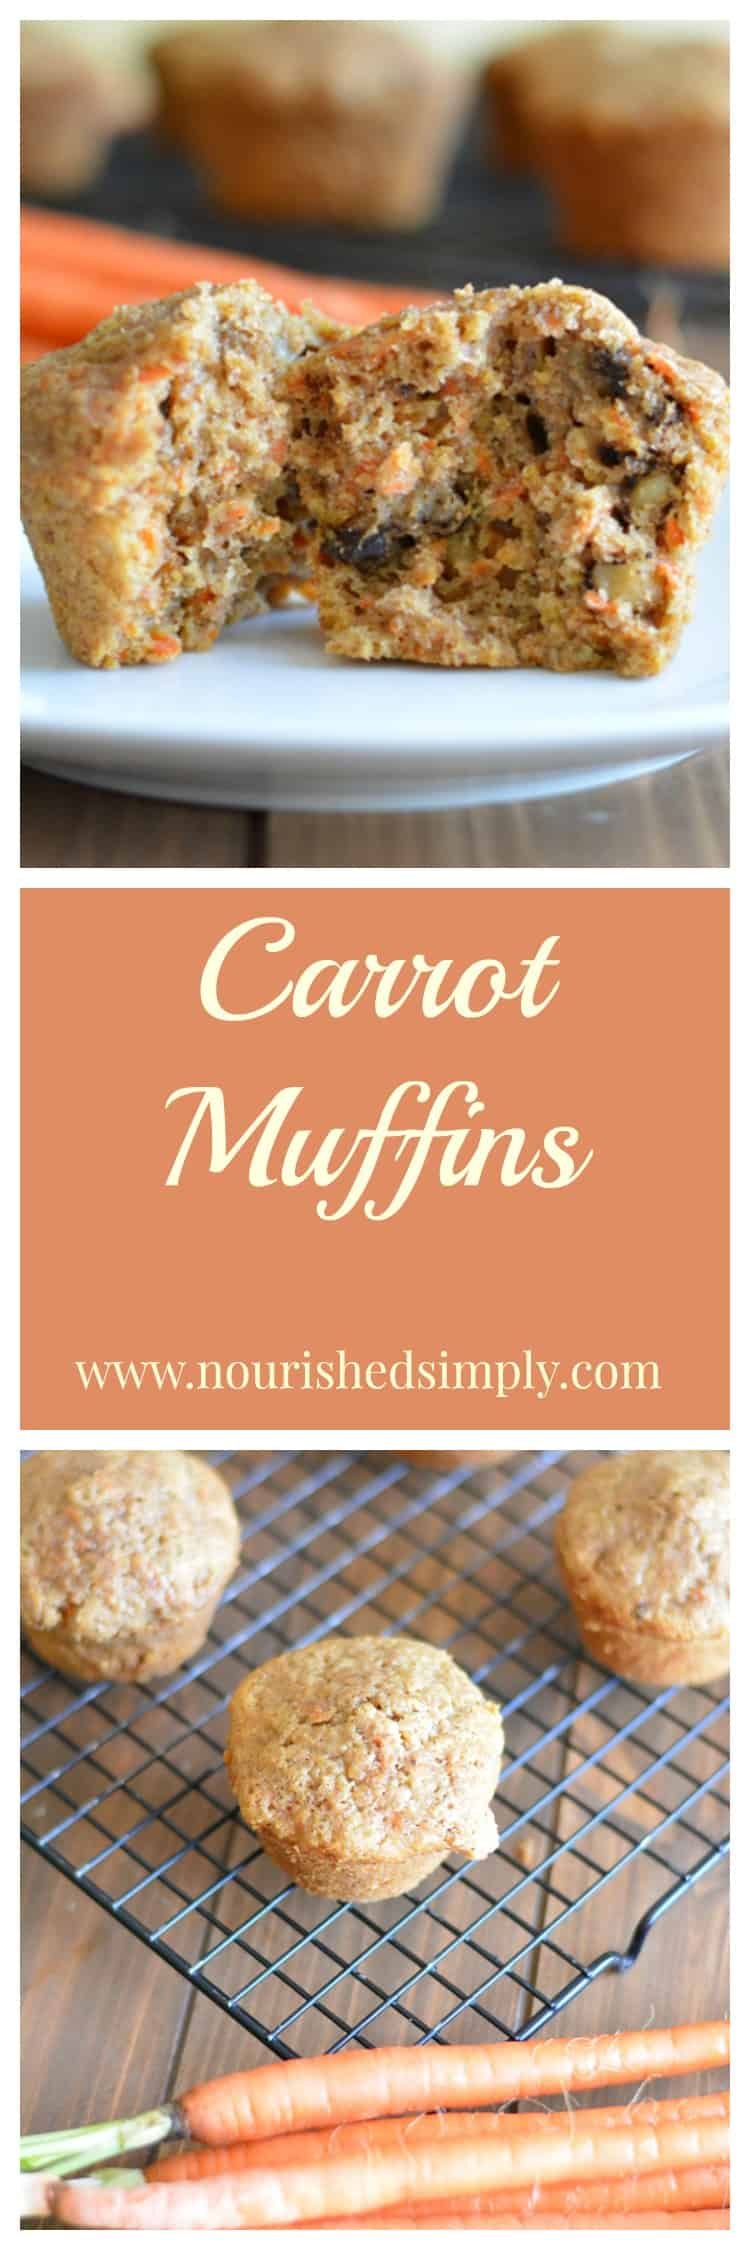 Carrot Muffins are a great breakfast choice that will remind you of carrot cake.